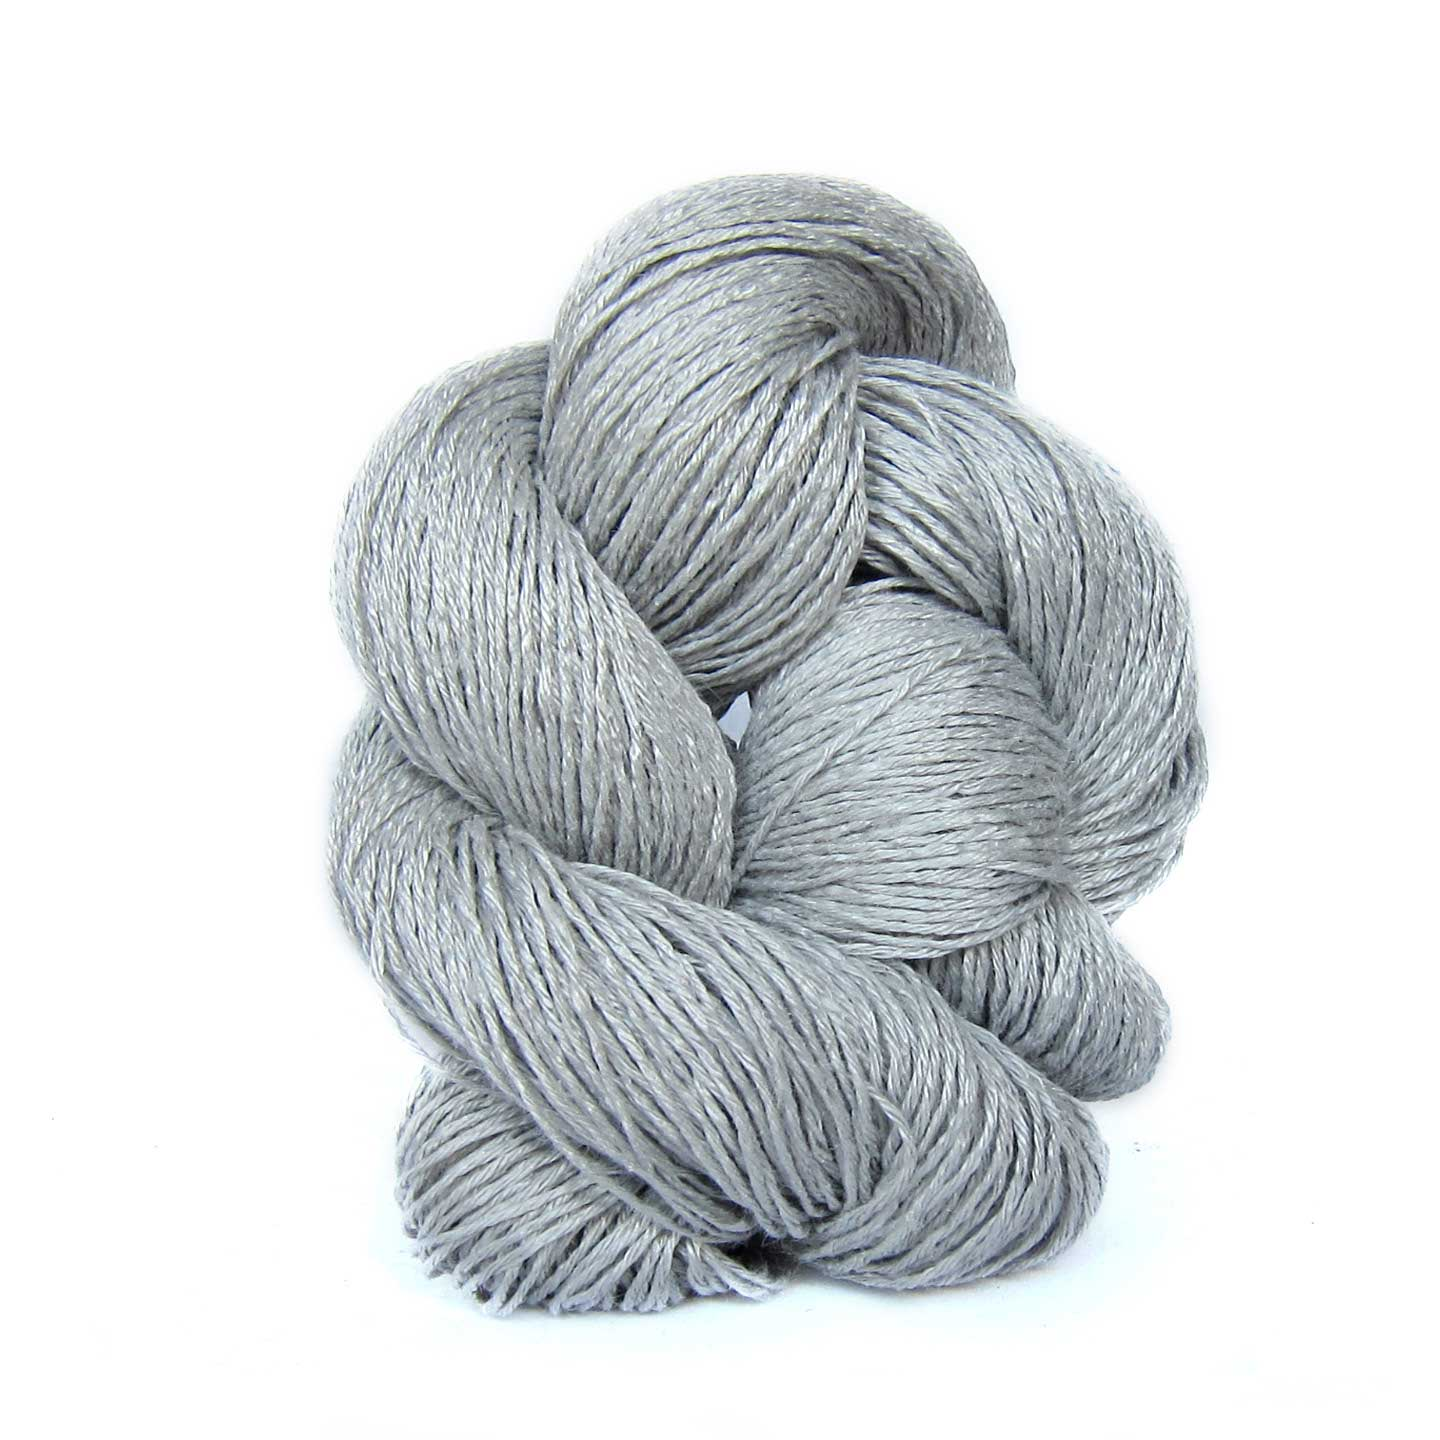 Cloud Grey Louet Euroflax Linen Yarn